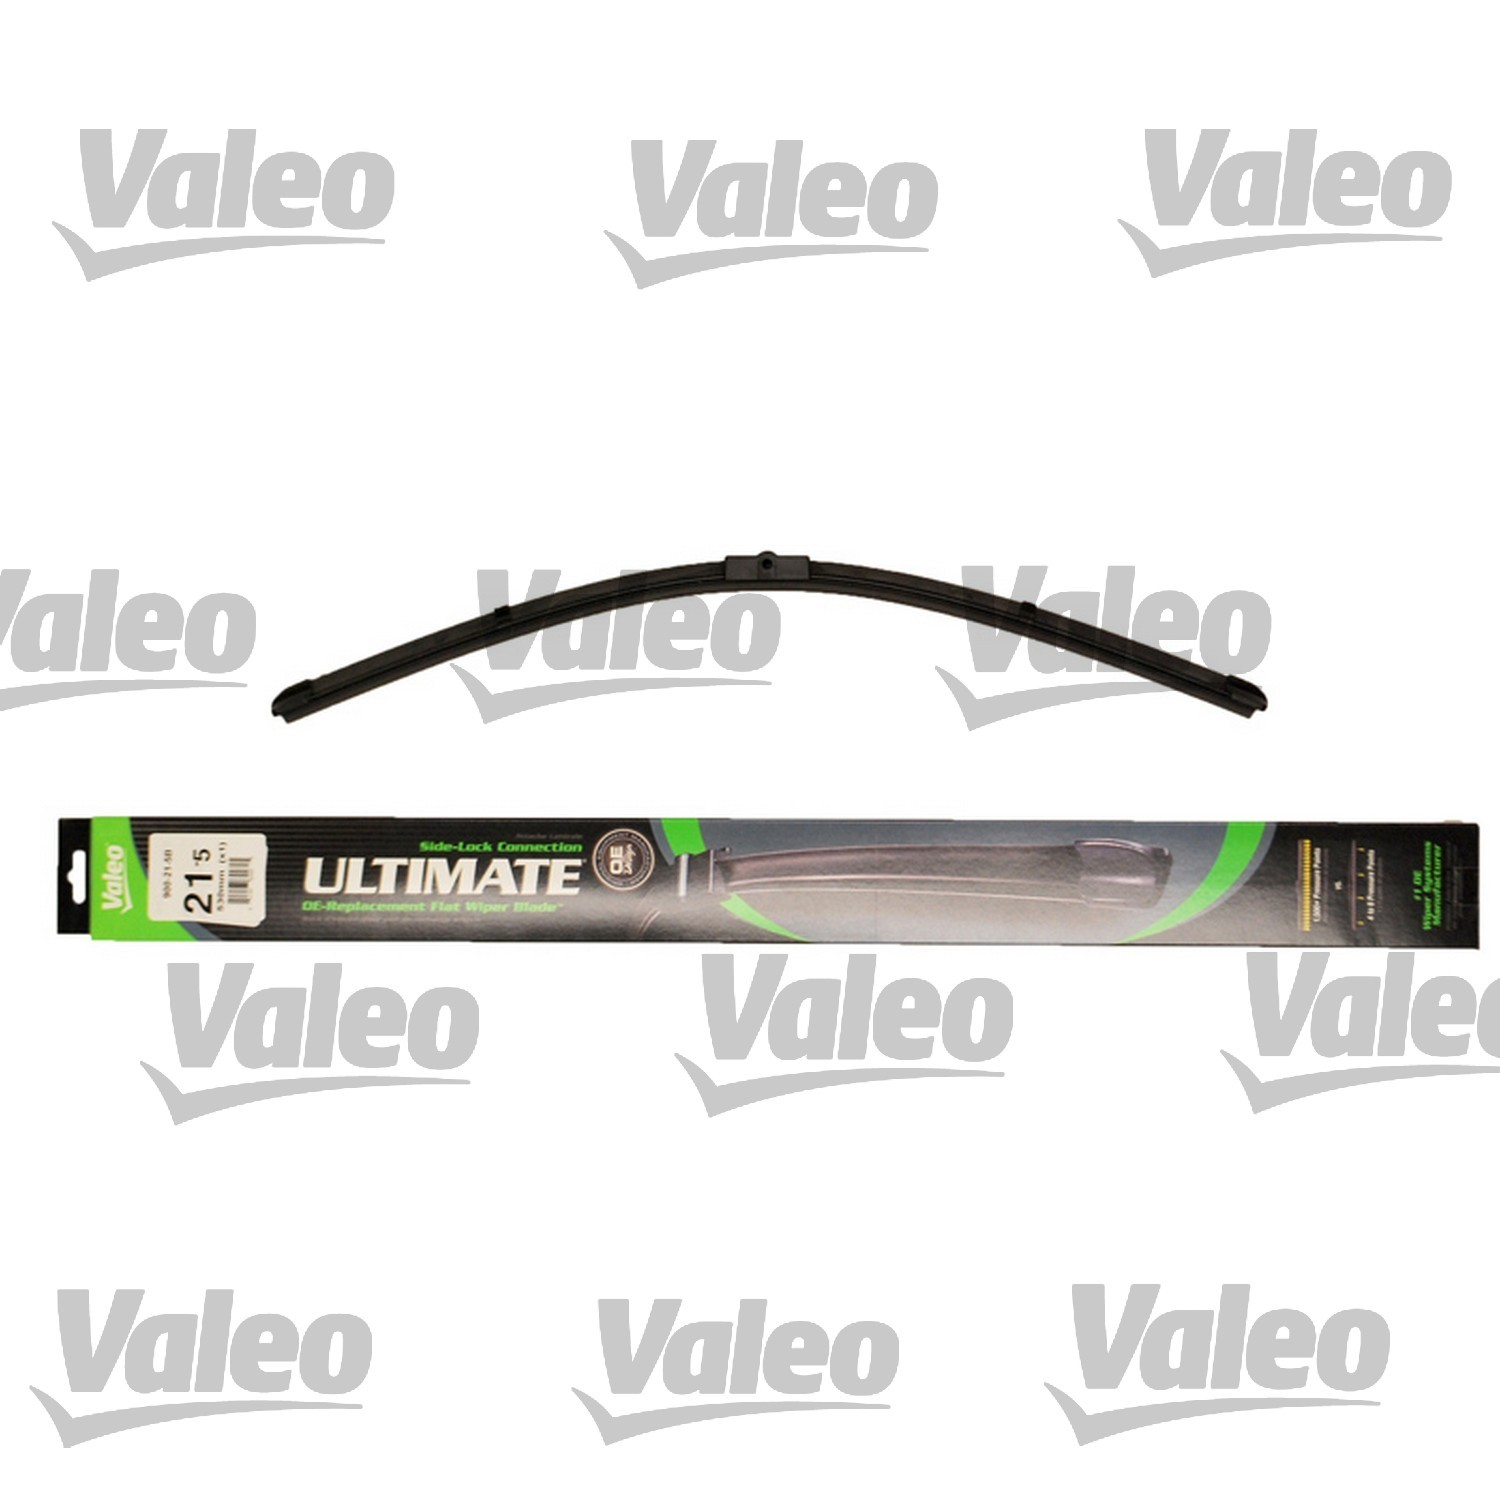 VALEO - Ultimate Wiper Blade - VEO 900-21-5B